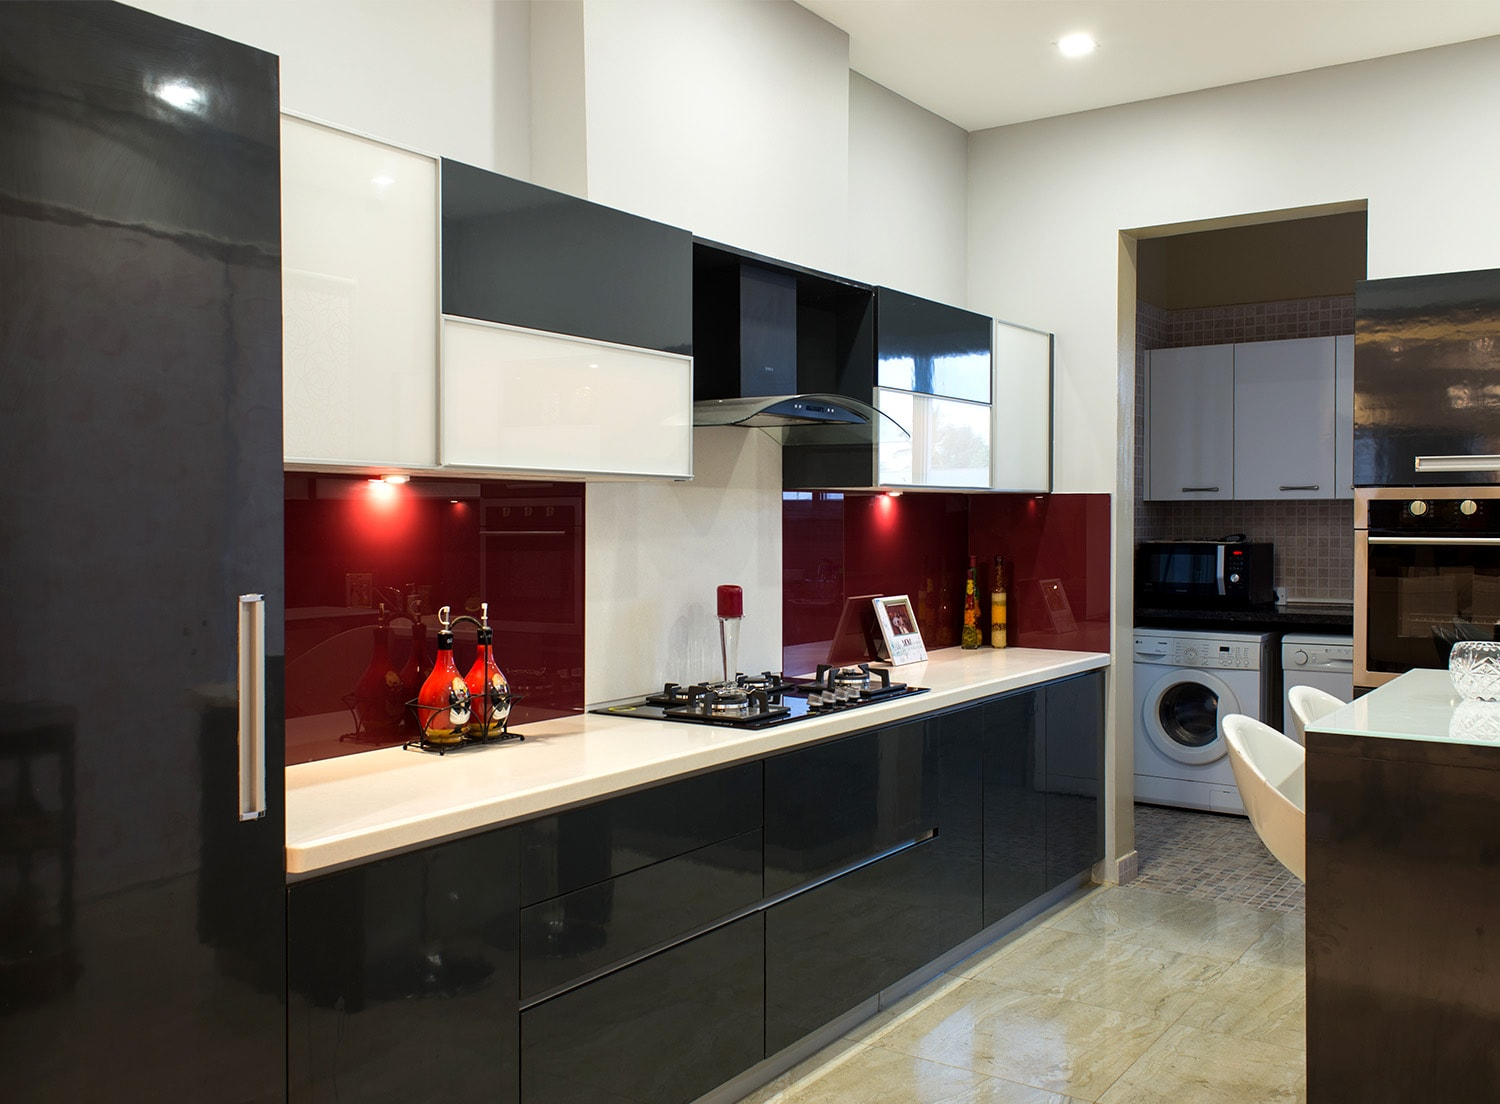 Home Interiors By Homelane Modular Kitchens Wardrobes Storage Units Design Services